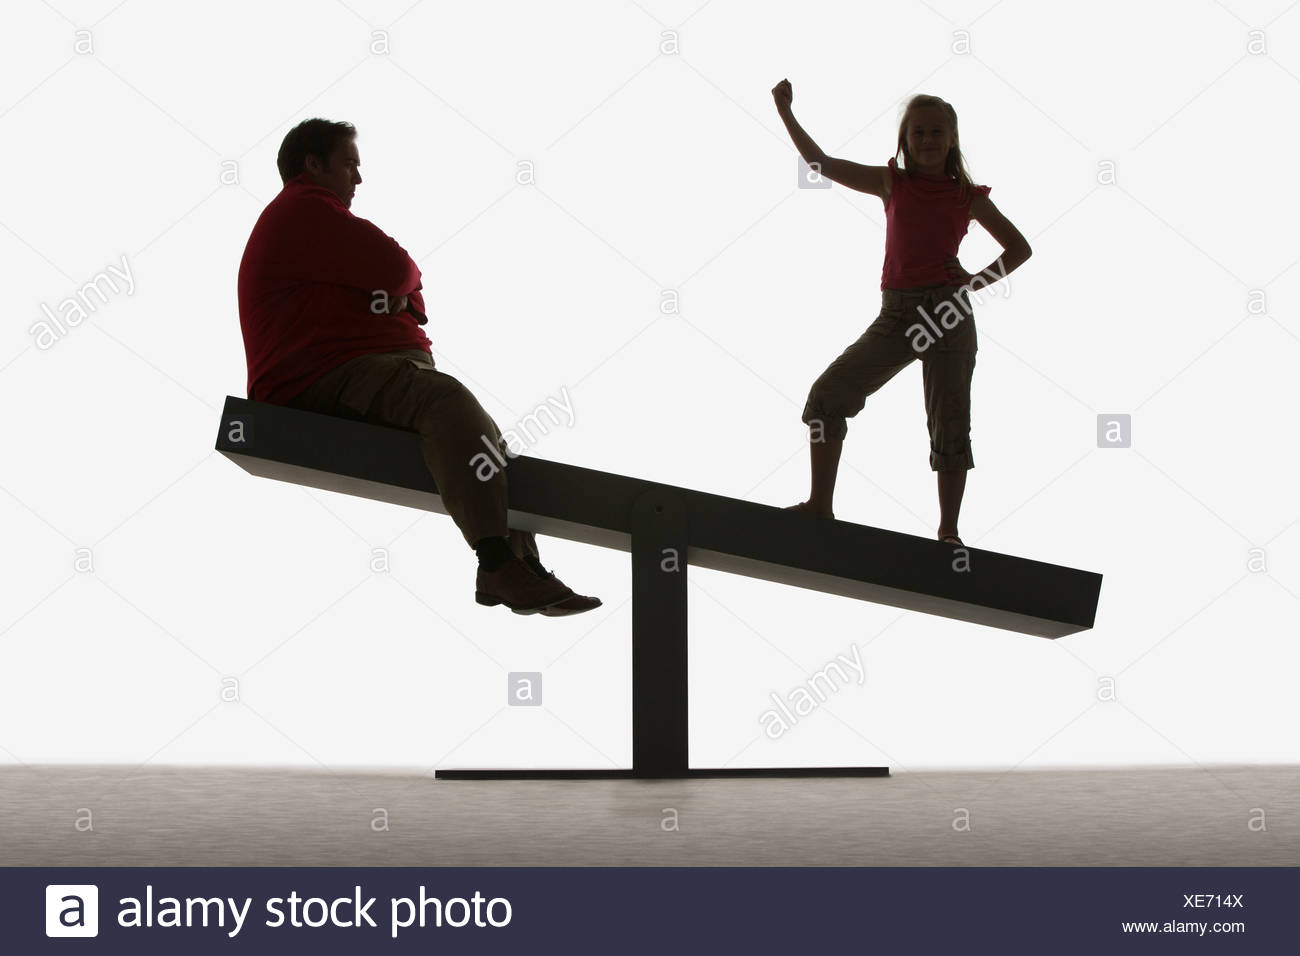 Man and girl on ends of a plank - Stock Image